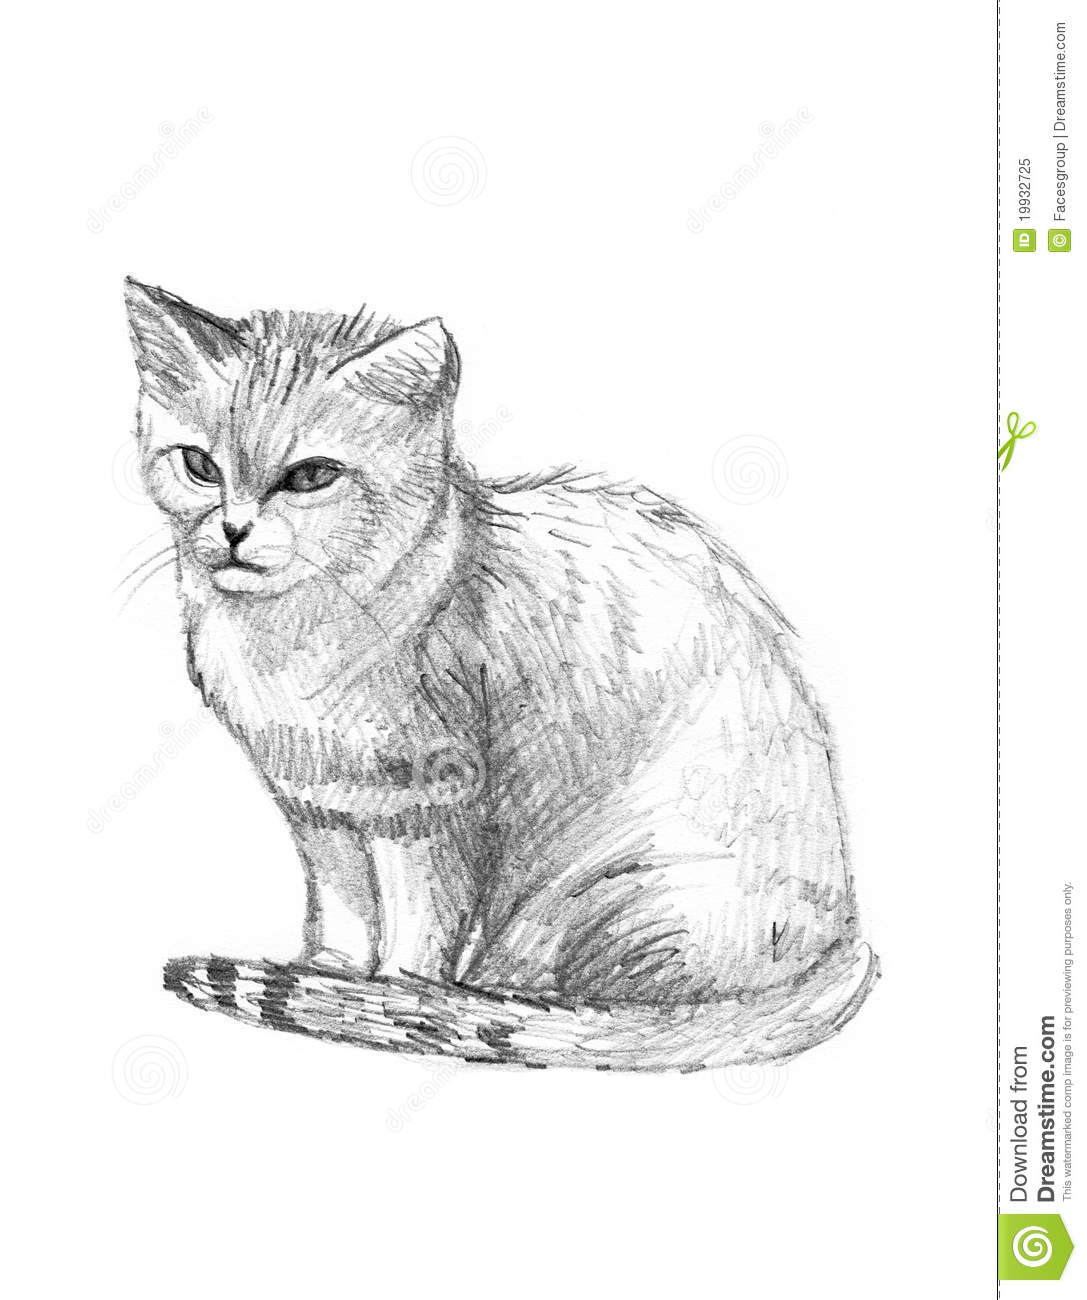 Sand Cat Drawing Sketch Royalty Free Stock Photo - Image: 19932725